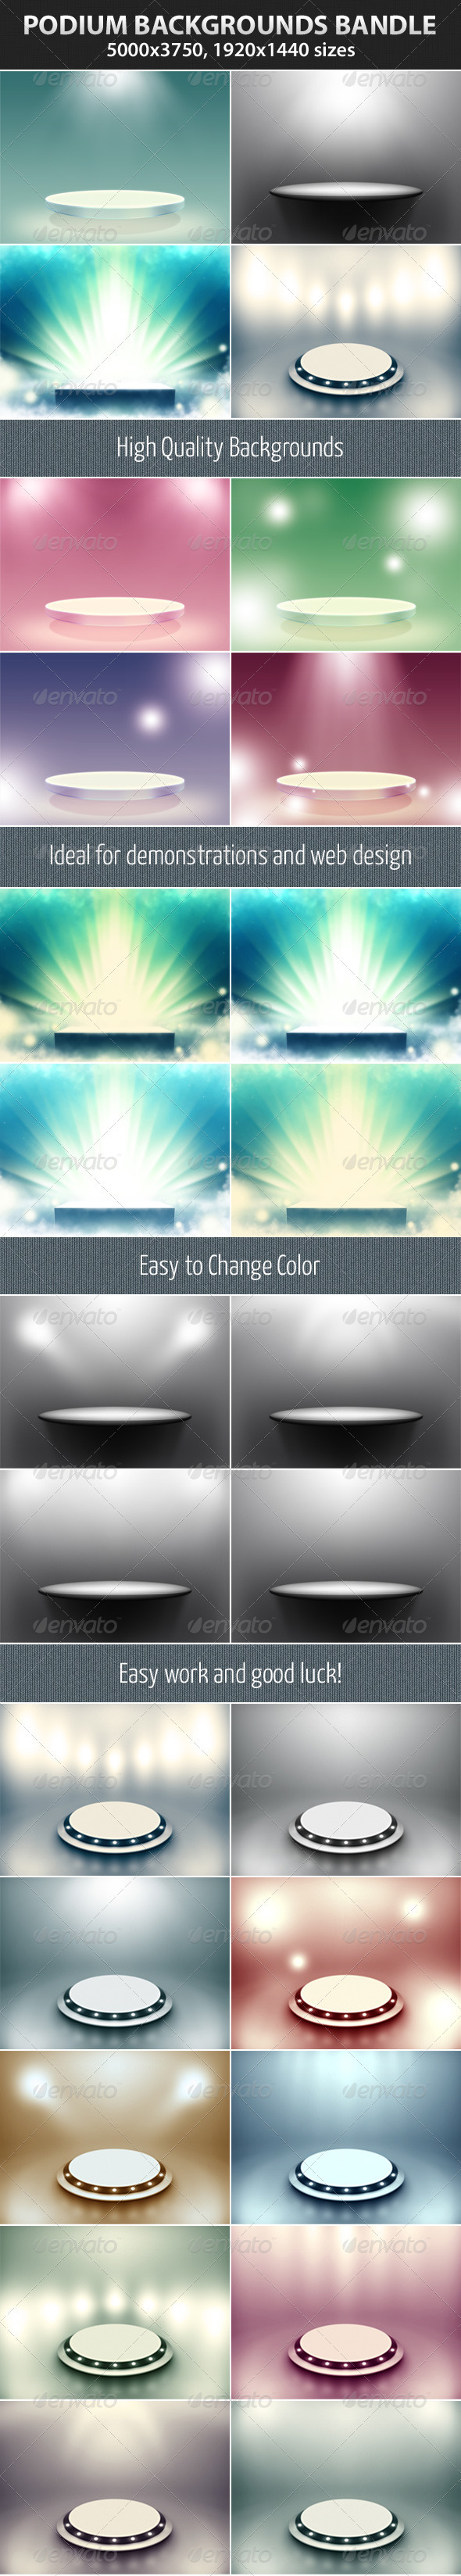 Podium Backgrounds Bundle - Backgrounds Graphics